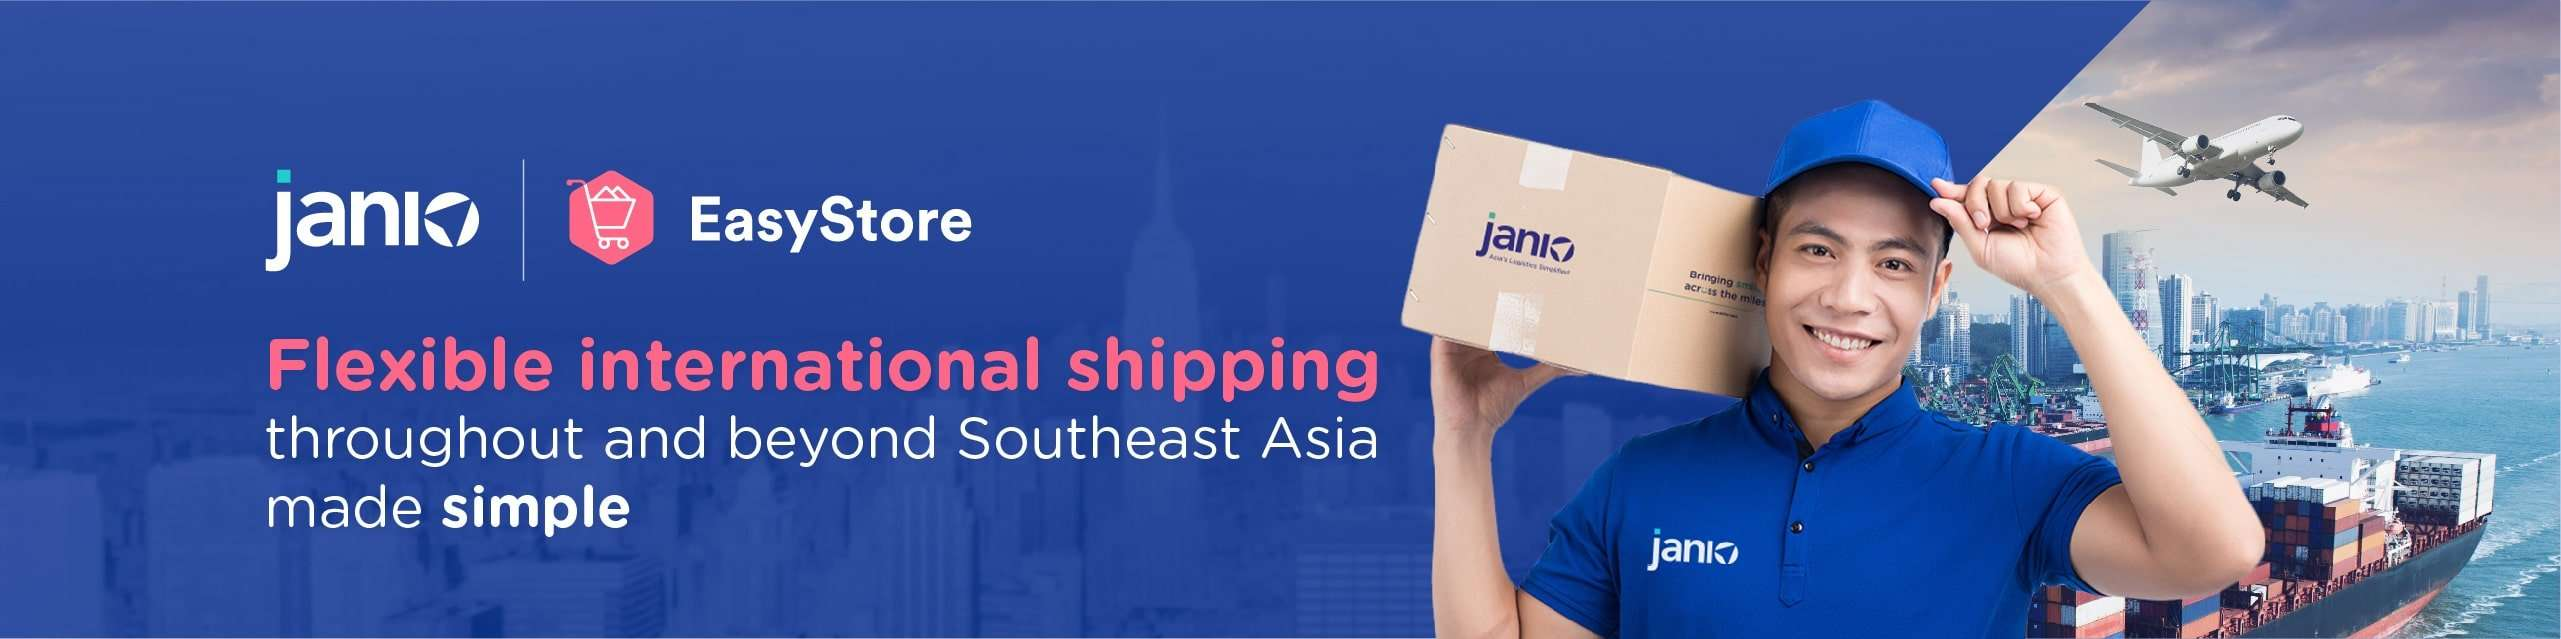 Janio and EasyStore's Partnership Banner featuring Janio's staff holding onto a box with a Janio Label in front of a background with ocean freighters and a plane in the background